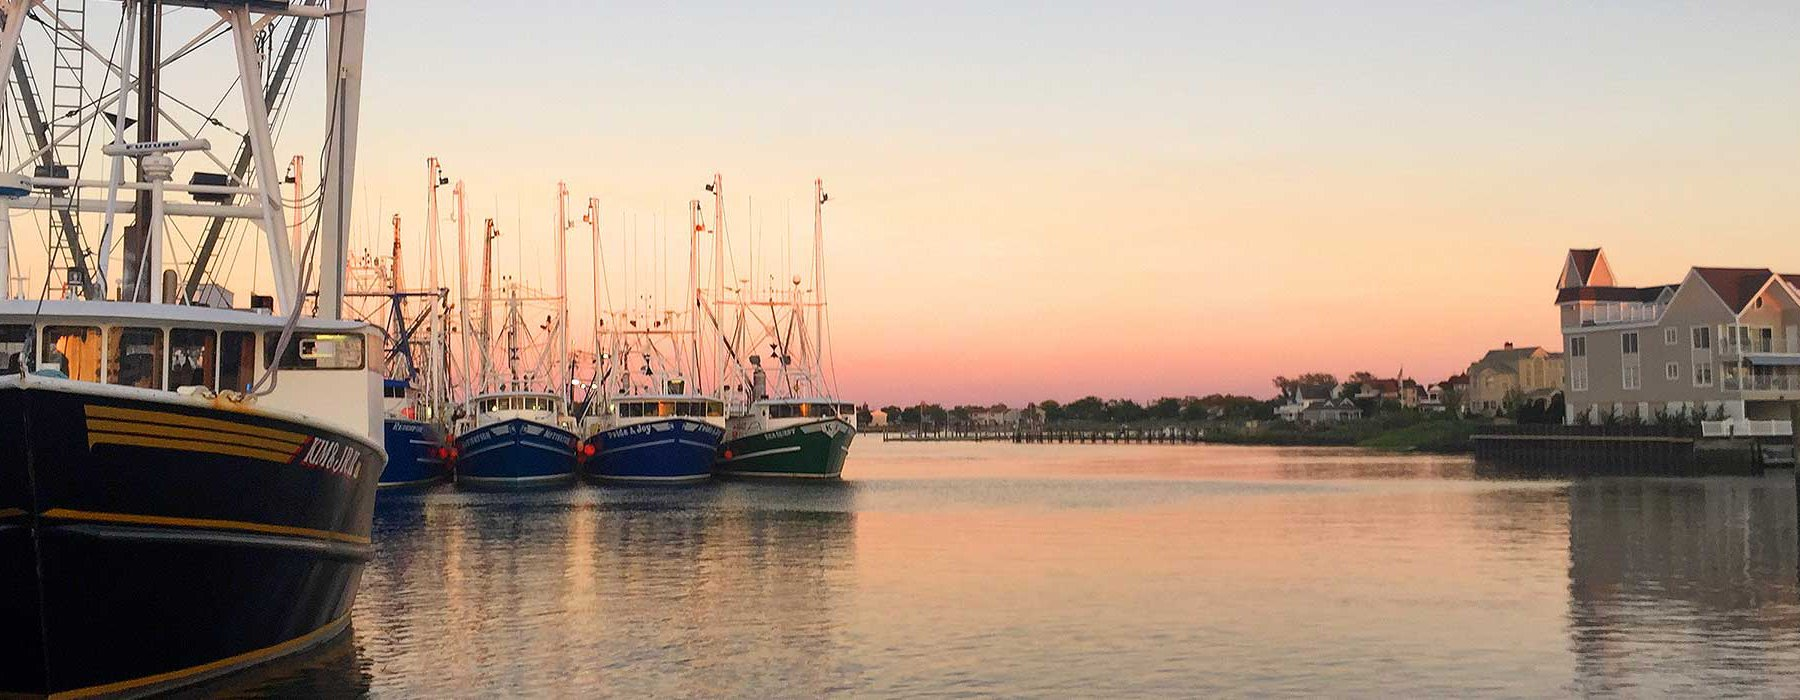 The City of Cape May New Jersey Chooses EvoGov: We have many customers in New Jersey, and we are happy to add Cape May!